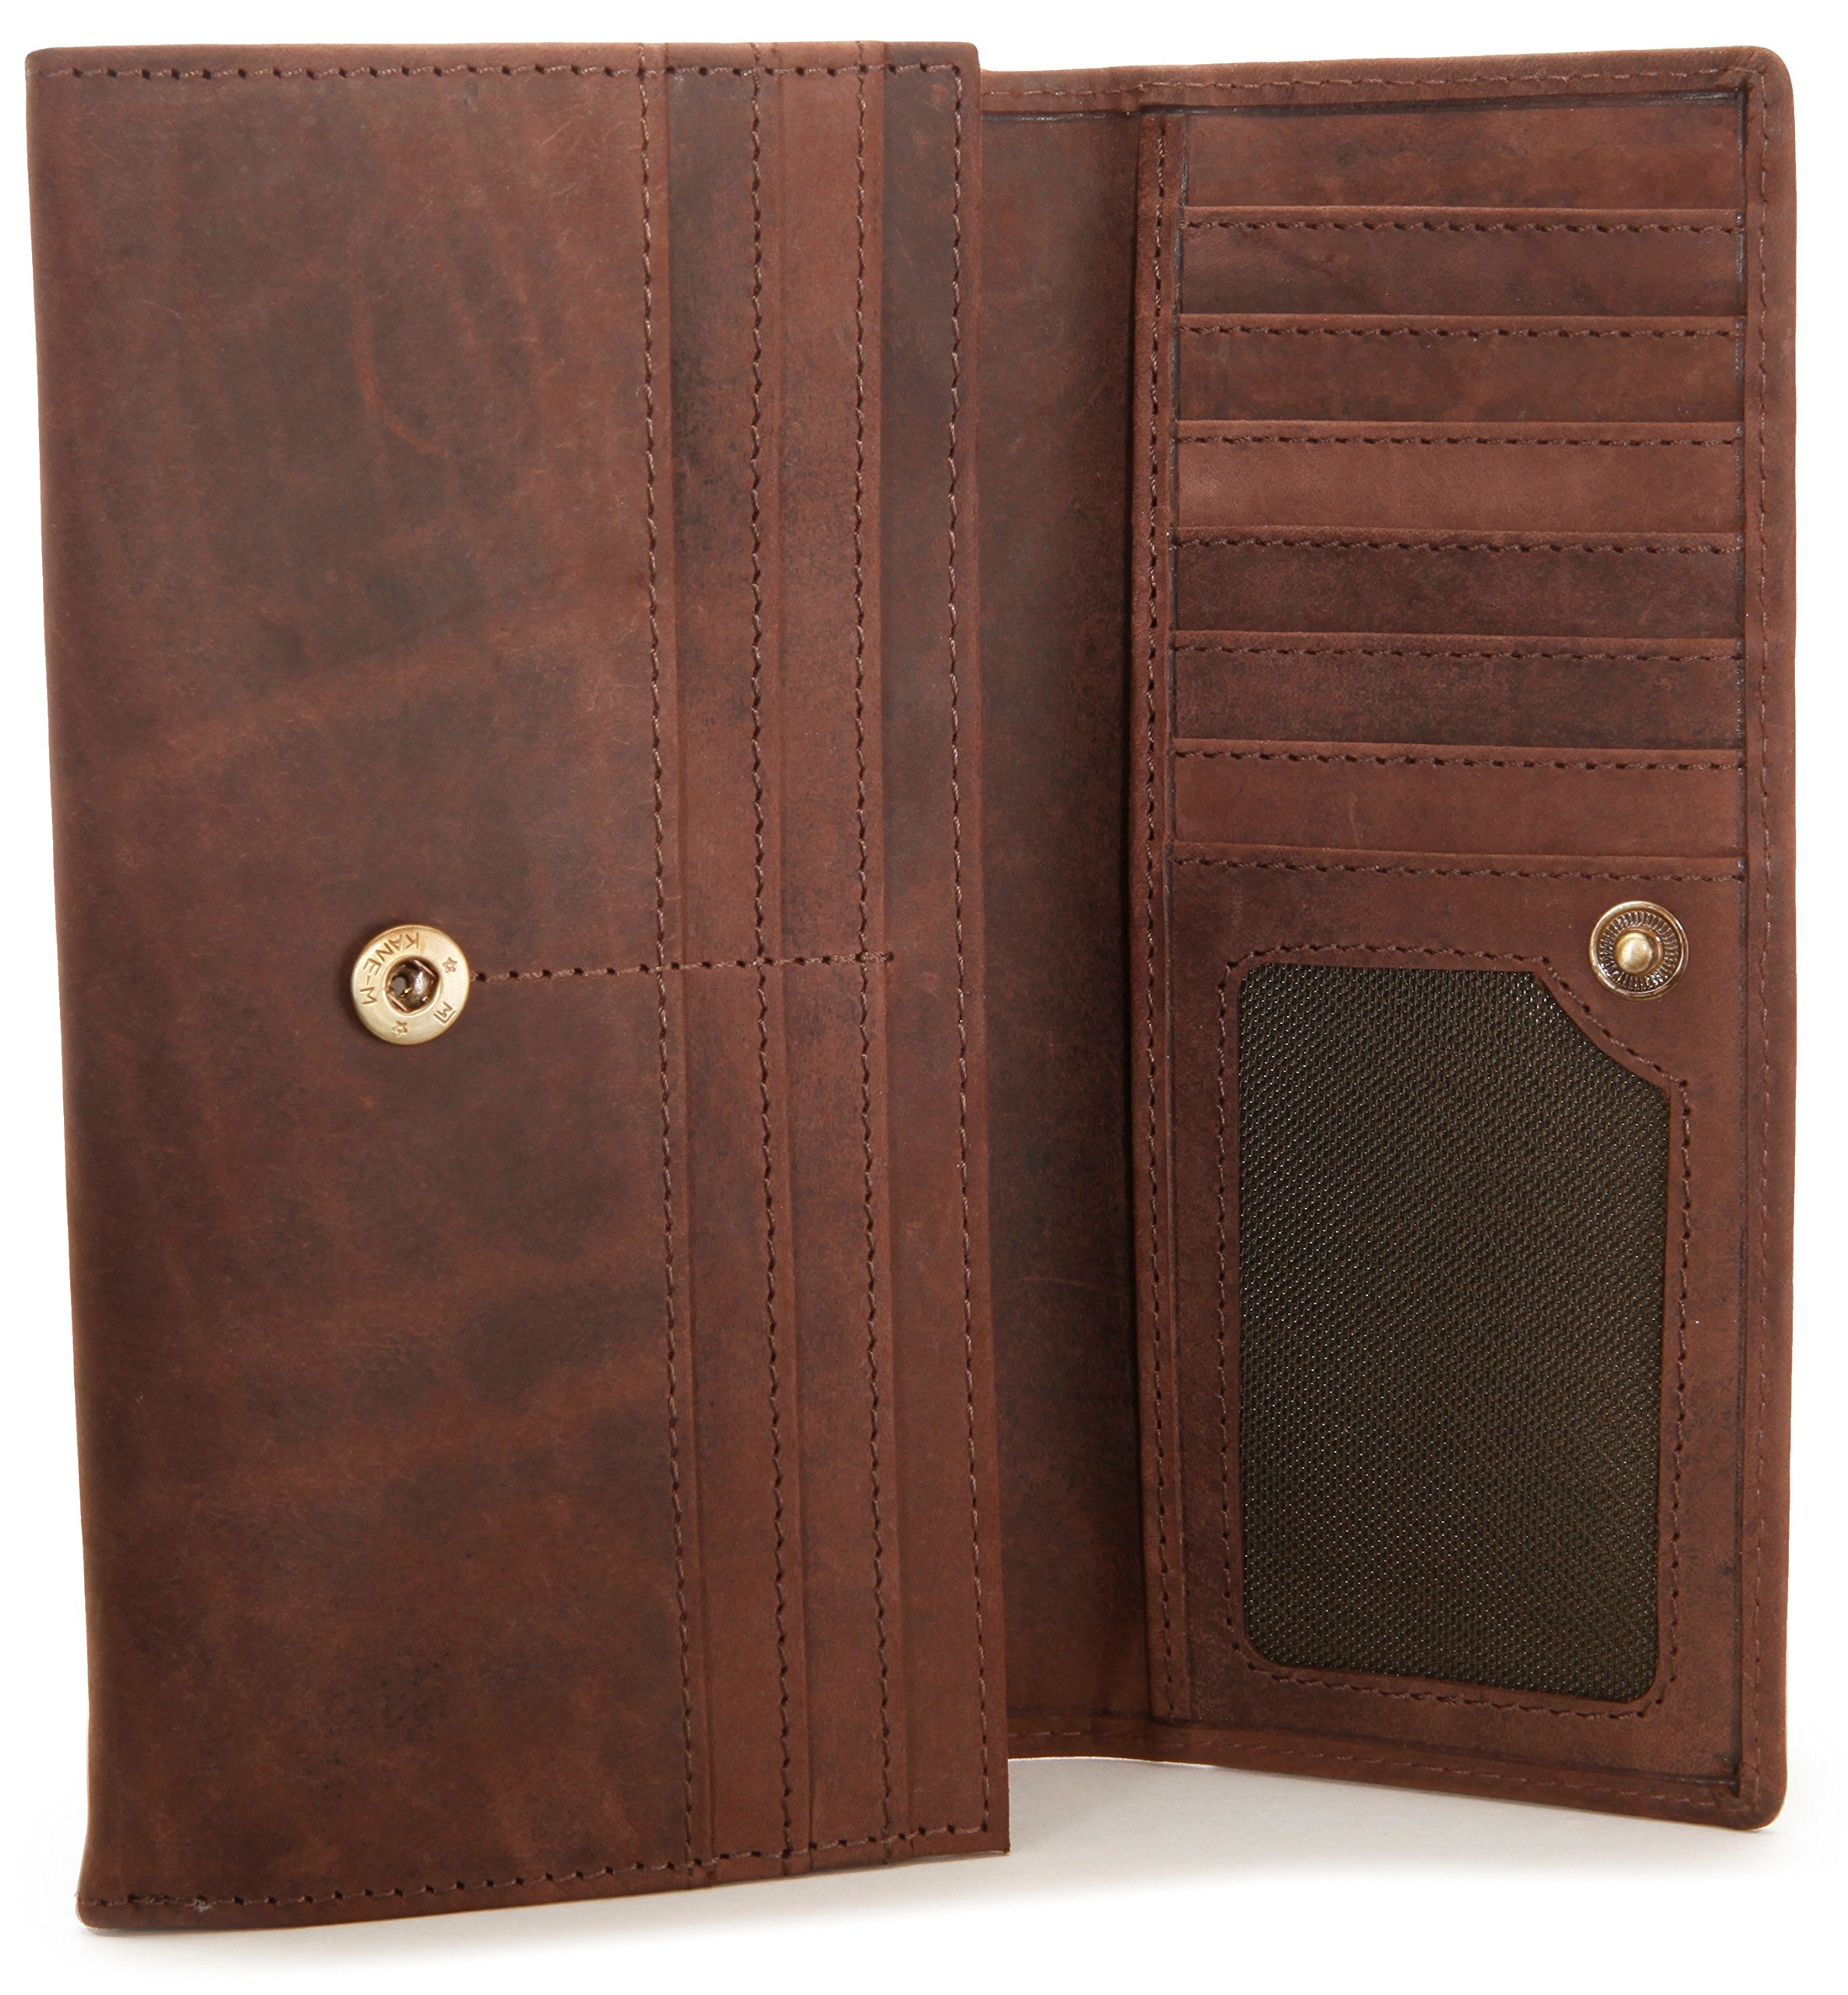 LEABAGS Charlotte genuine buffalo leather women's wallet in vintage style - Nutmeg by LEABAGS (Image #5)